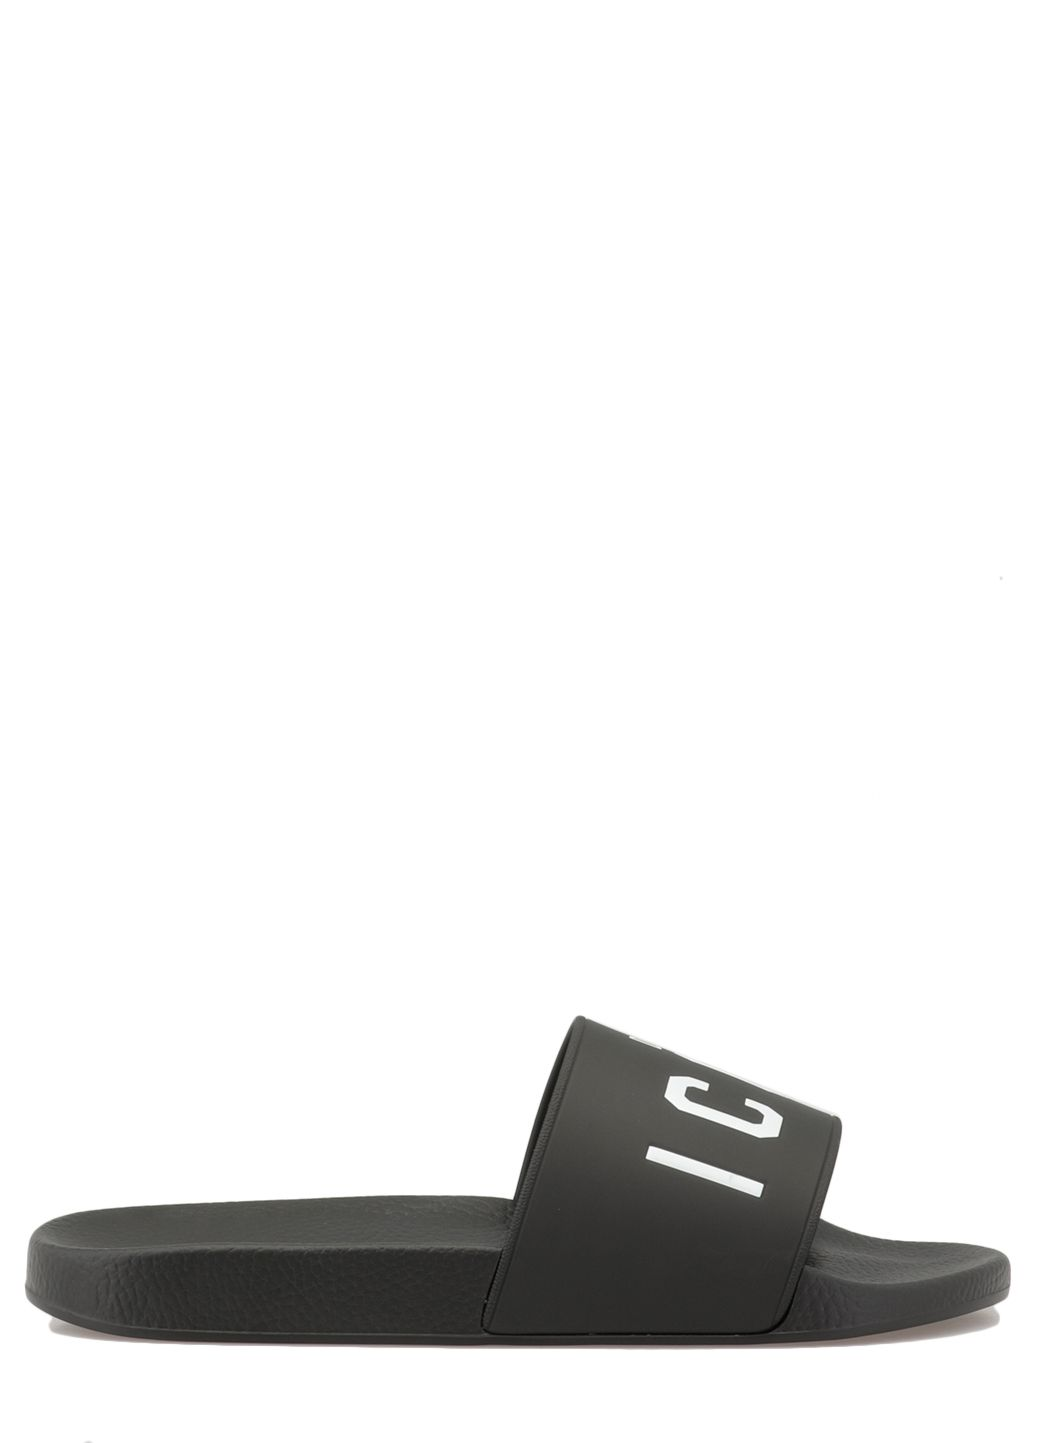 Dsquared2 slide